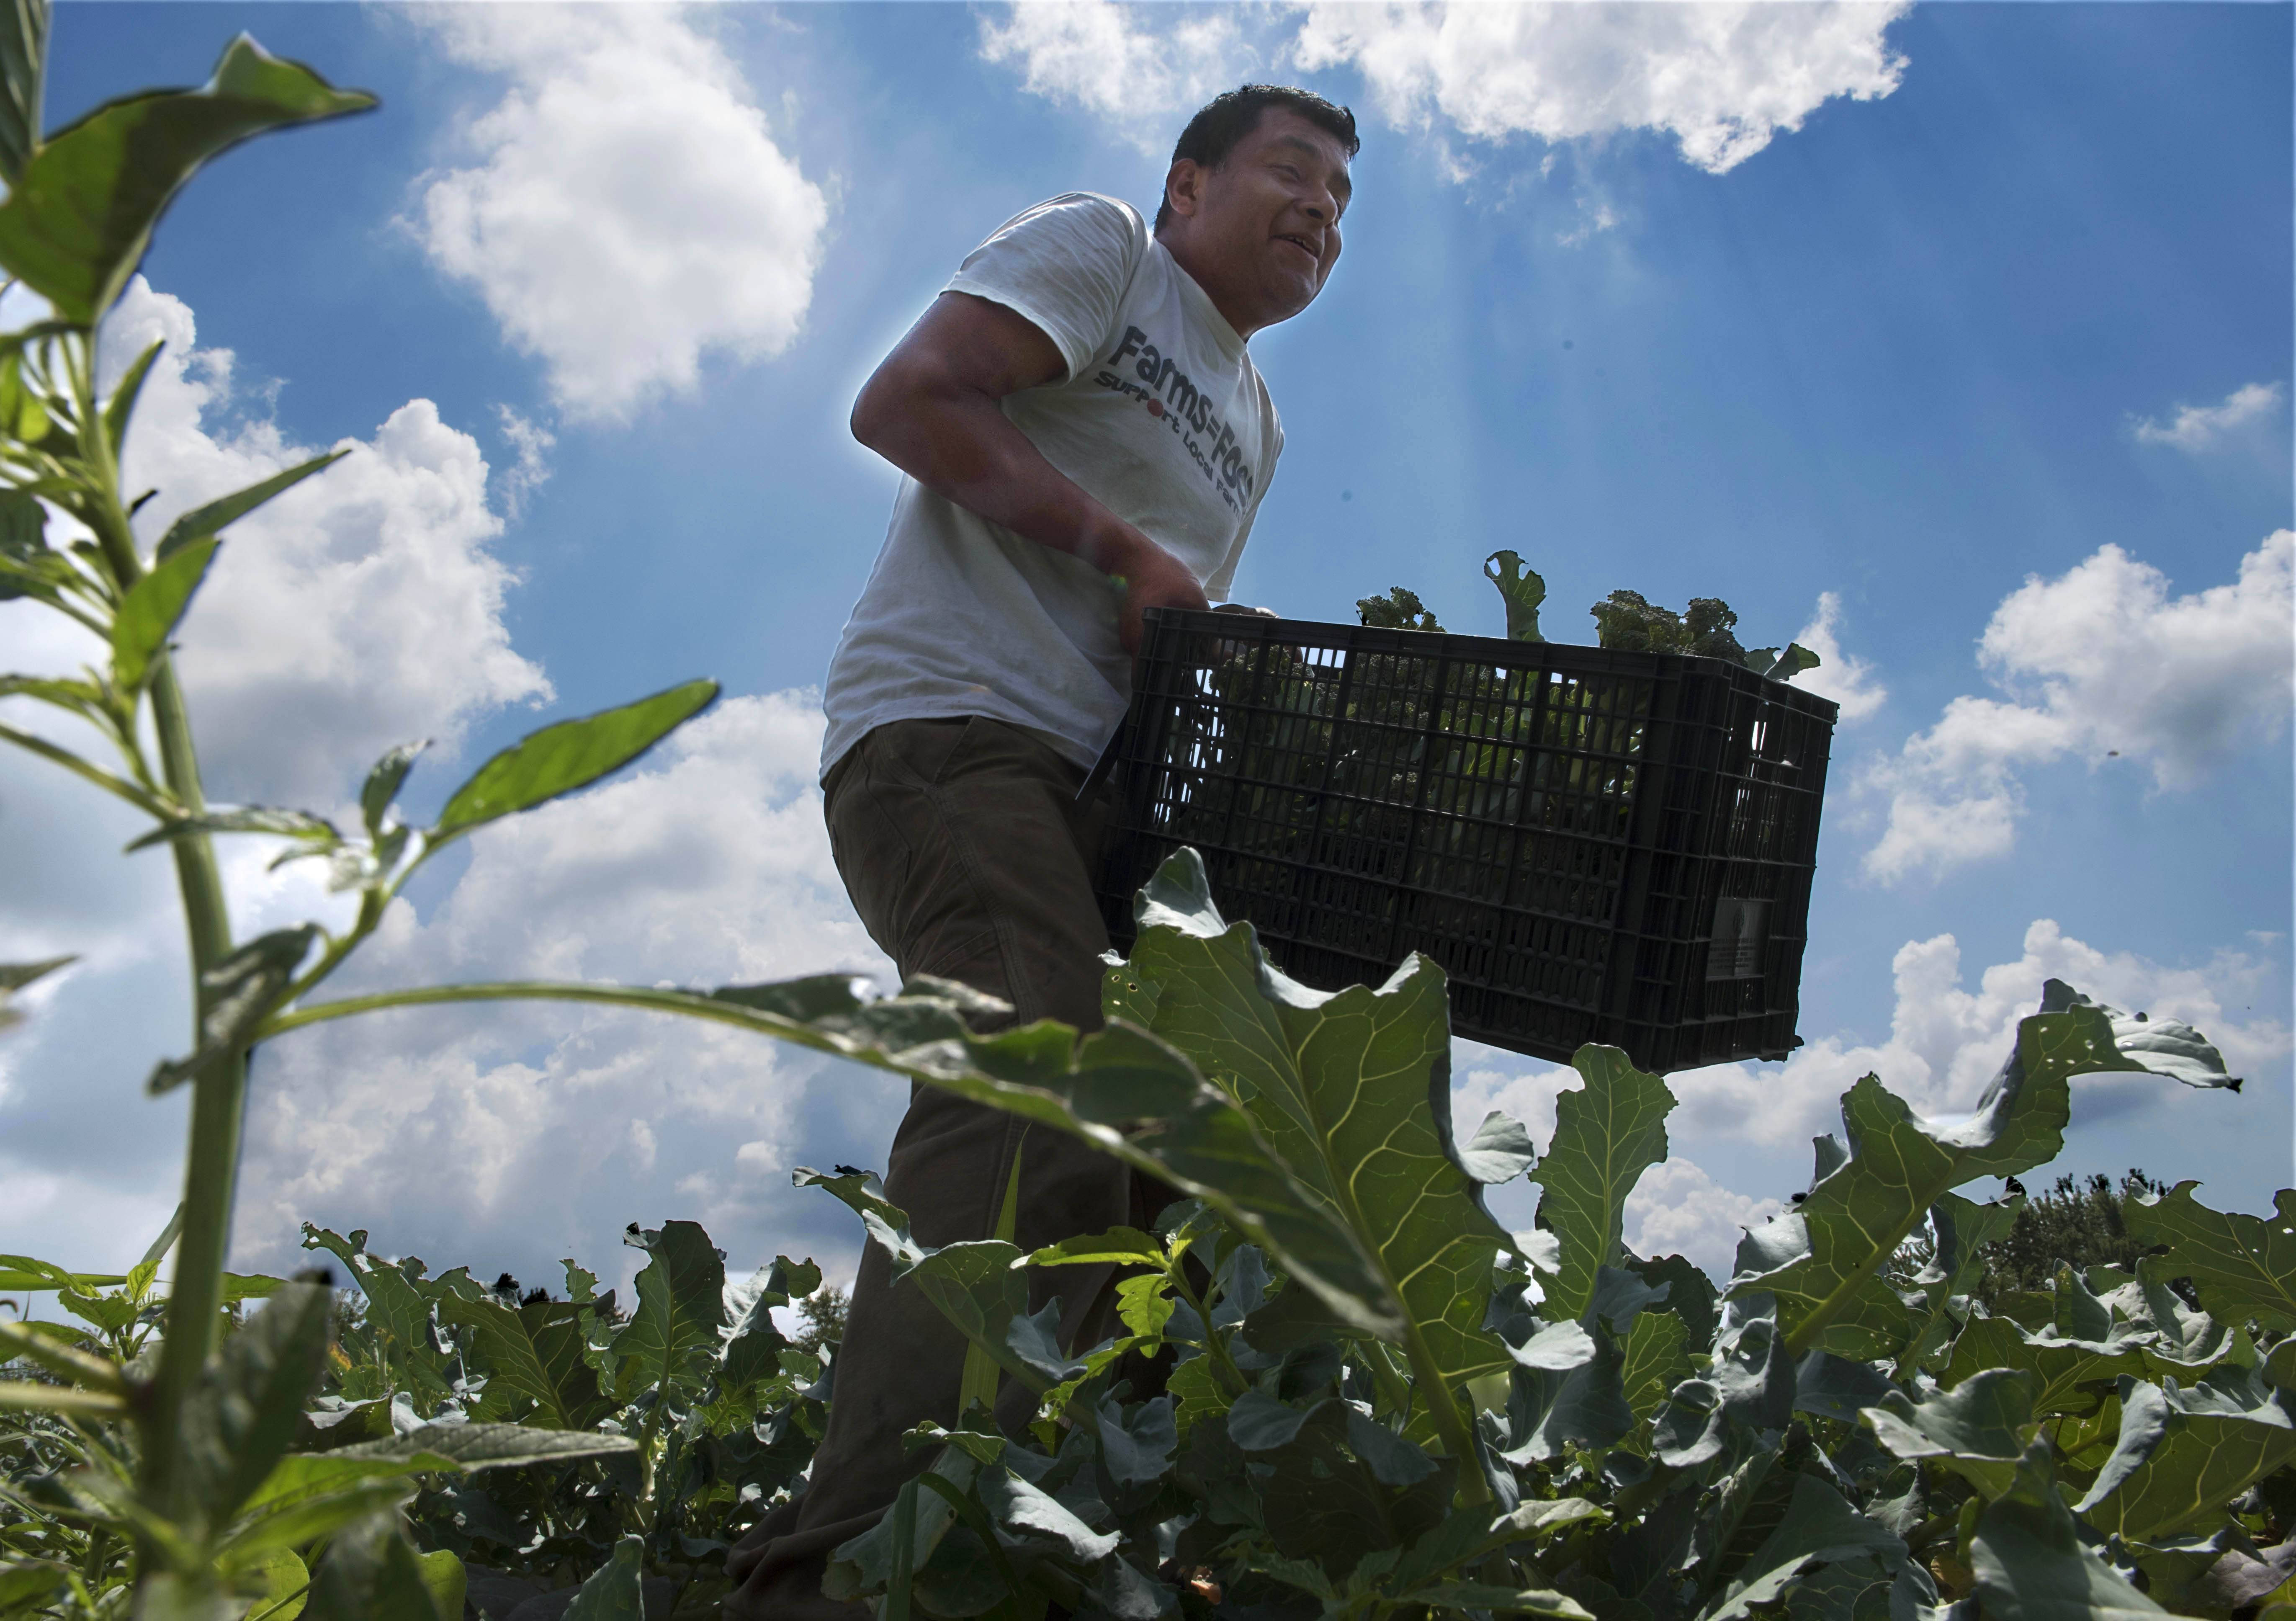 Co-owner Luis Bernard carries a crate of freshly-picked broccoli through the fields of Rustic Road Farm in Elburn.